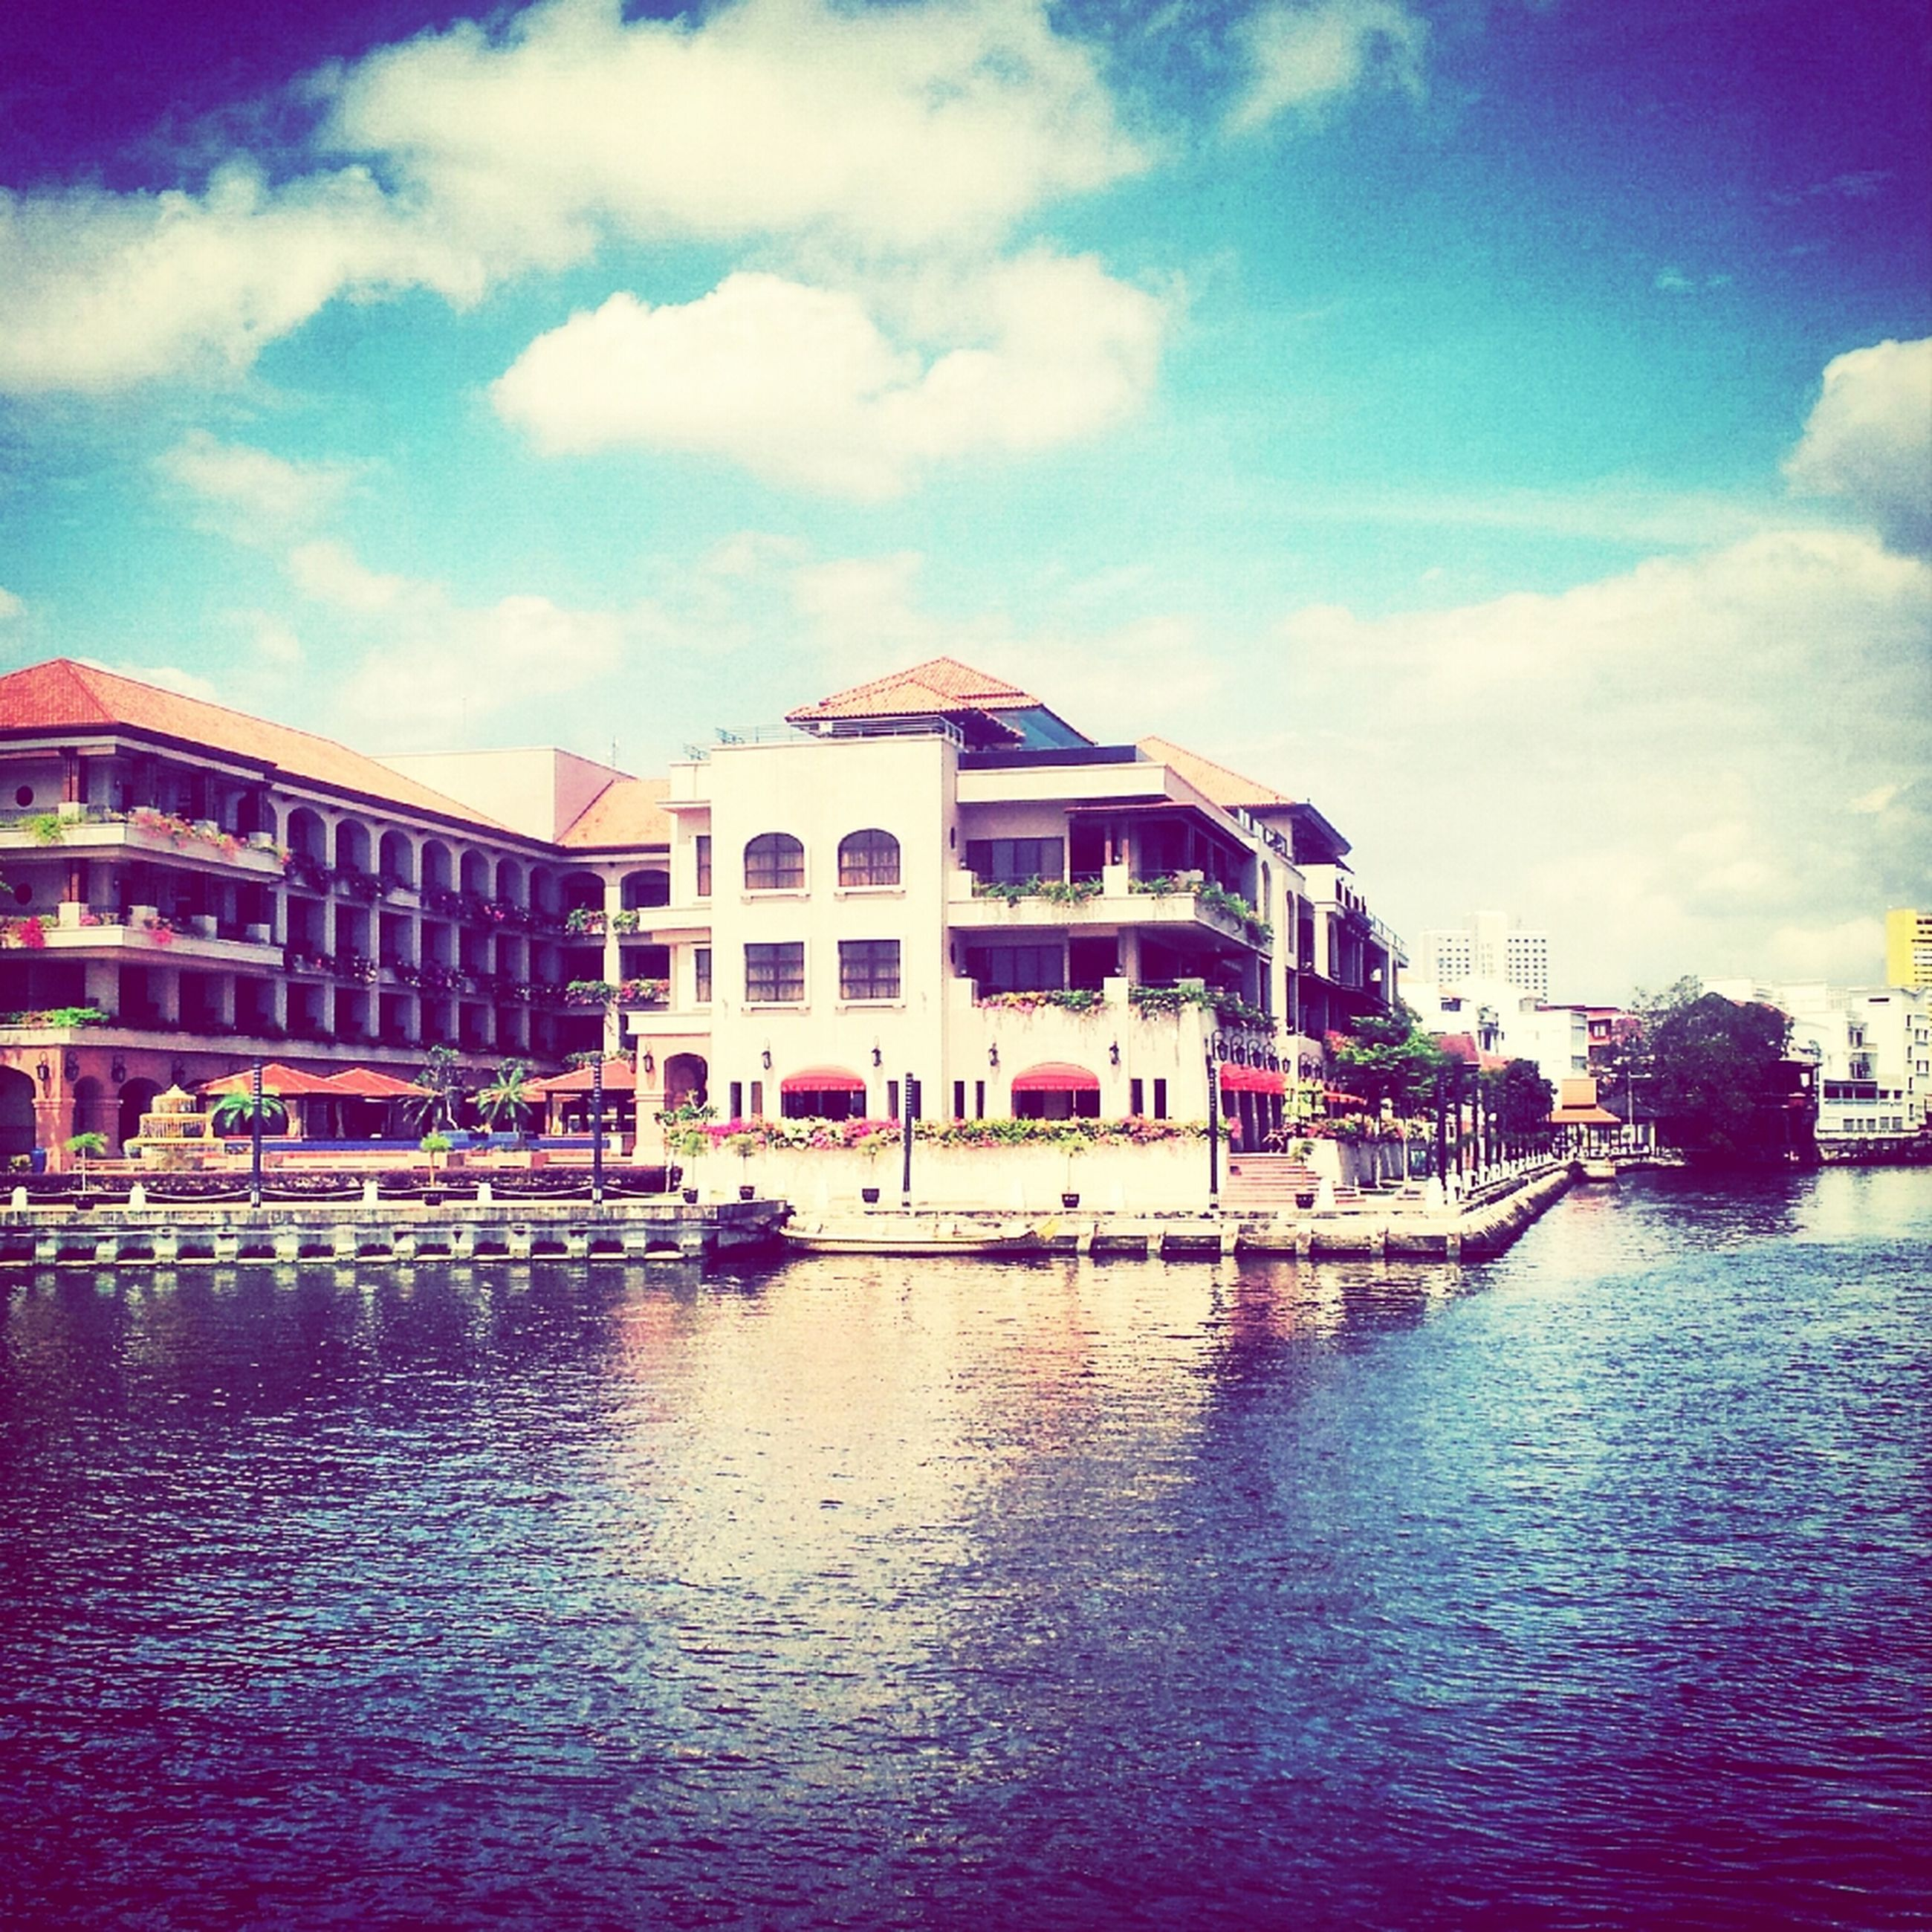 architecture, building exterior, built structure, water, sky, waterfront, cloud - sky, cloud, nautical vessel, reflection, incidental people, city, building, outdoors, day, residential building, residential structure, house, transportation, cloudy